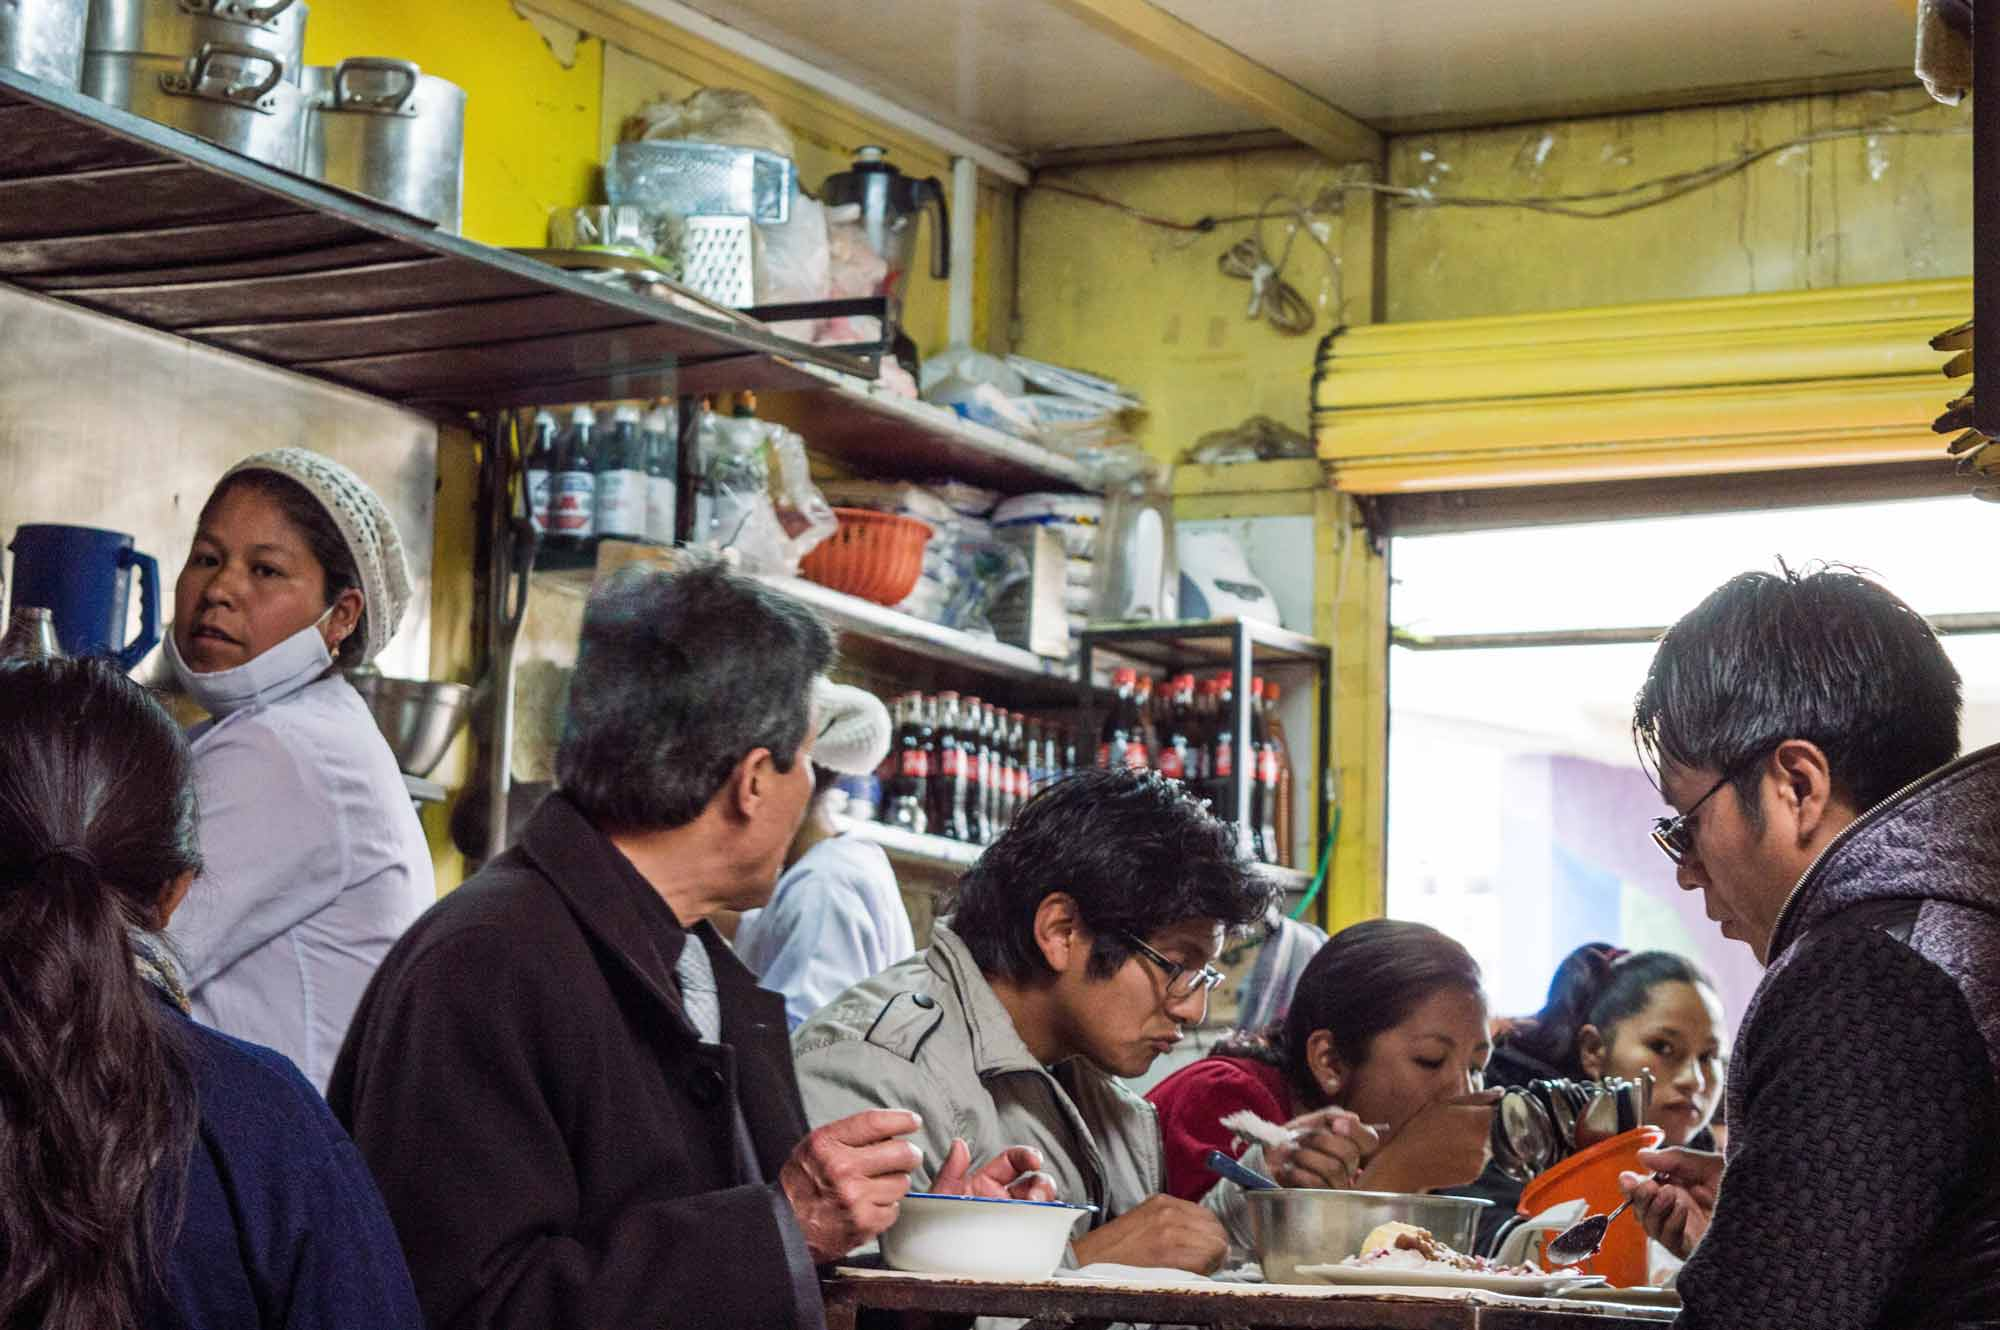 Local diners eating in the Mercado Lanza in La Paz, a great opportunity to meet local people and spend your money in a responsible tourism fashion